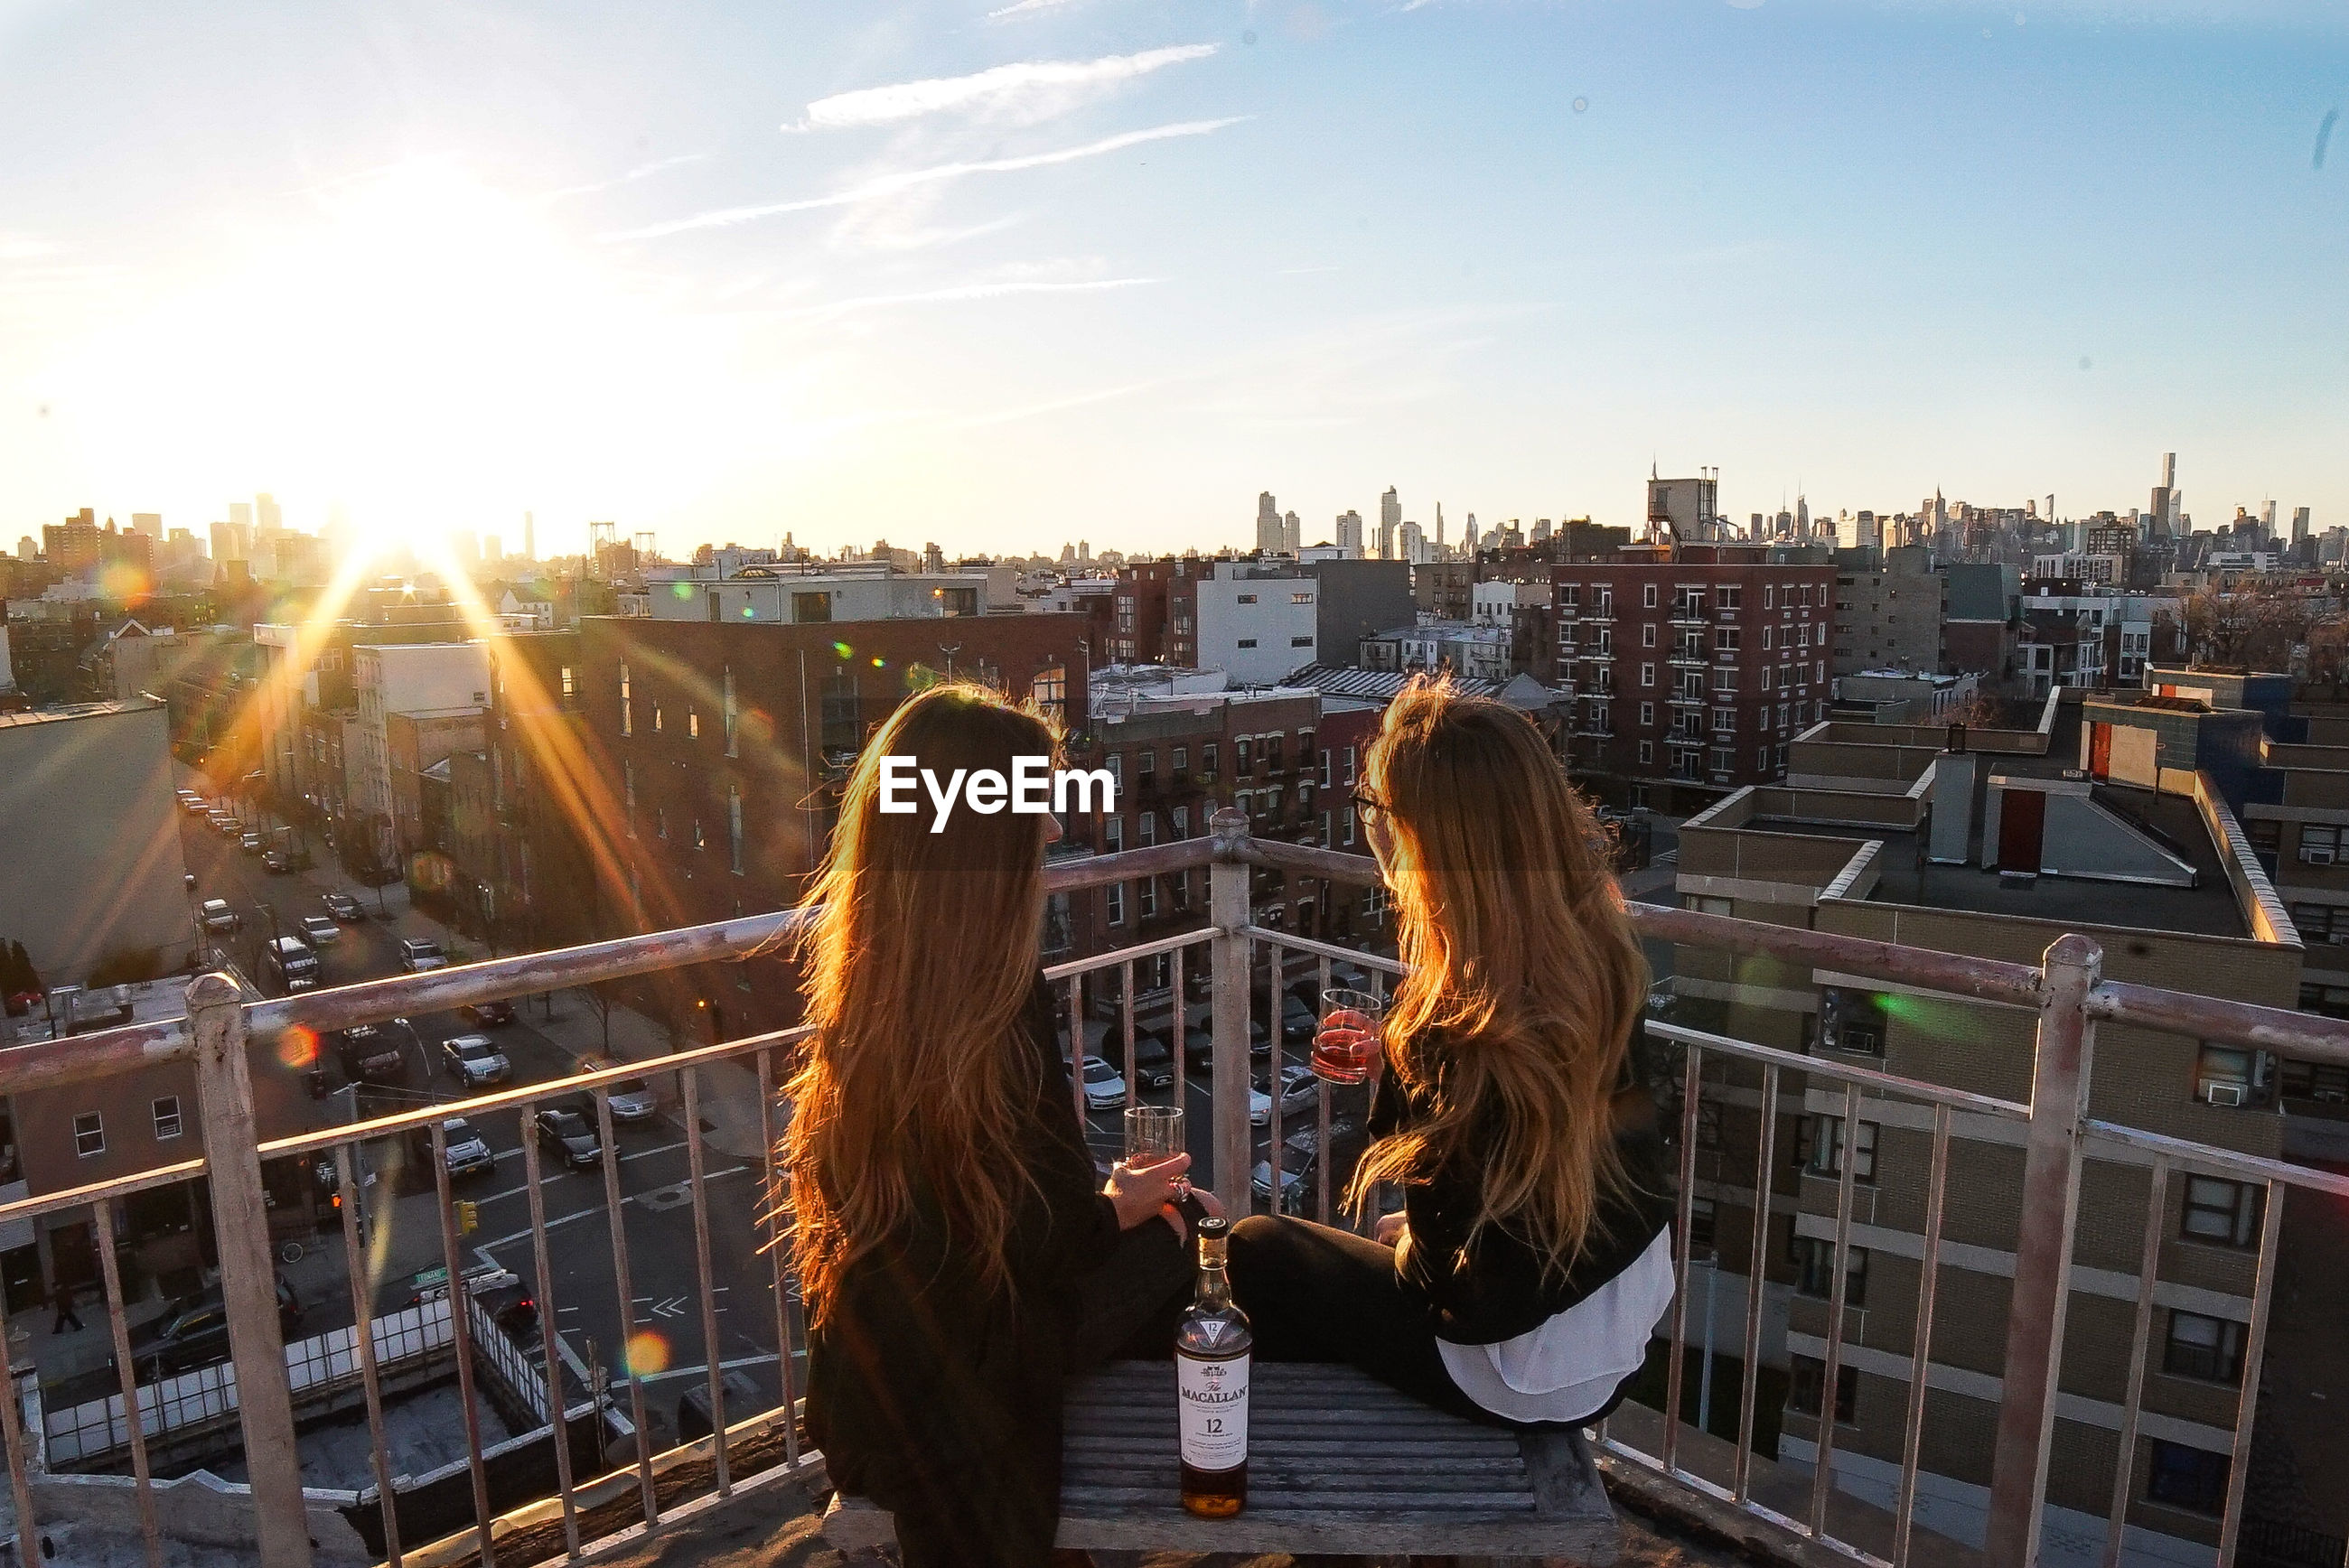 built structure, building exterior, architecture, two people, city, cityscape, sunset, sunlight, women, young women, real people, sun, young adult, togetherness, city life, skyscraper, outdoors, sky, lifestyles, urban skyline, men, friendship, day, adult, people